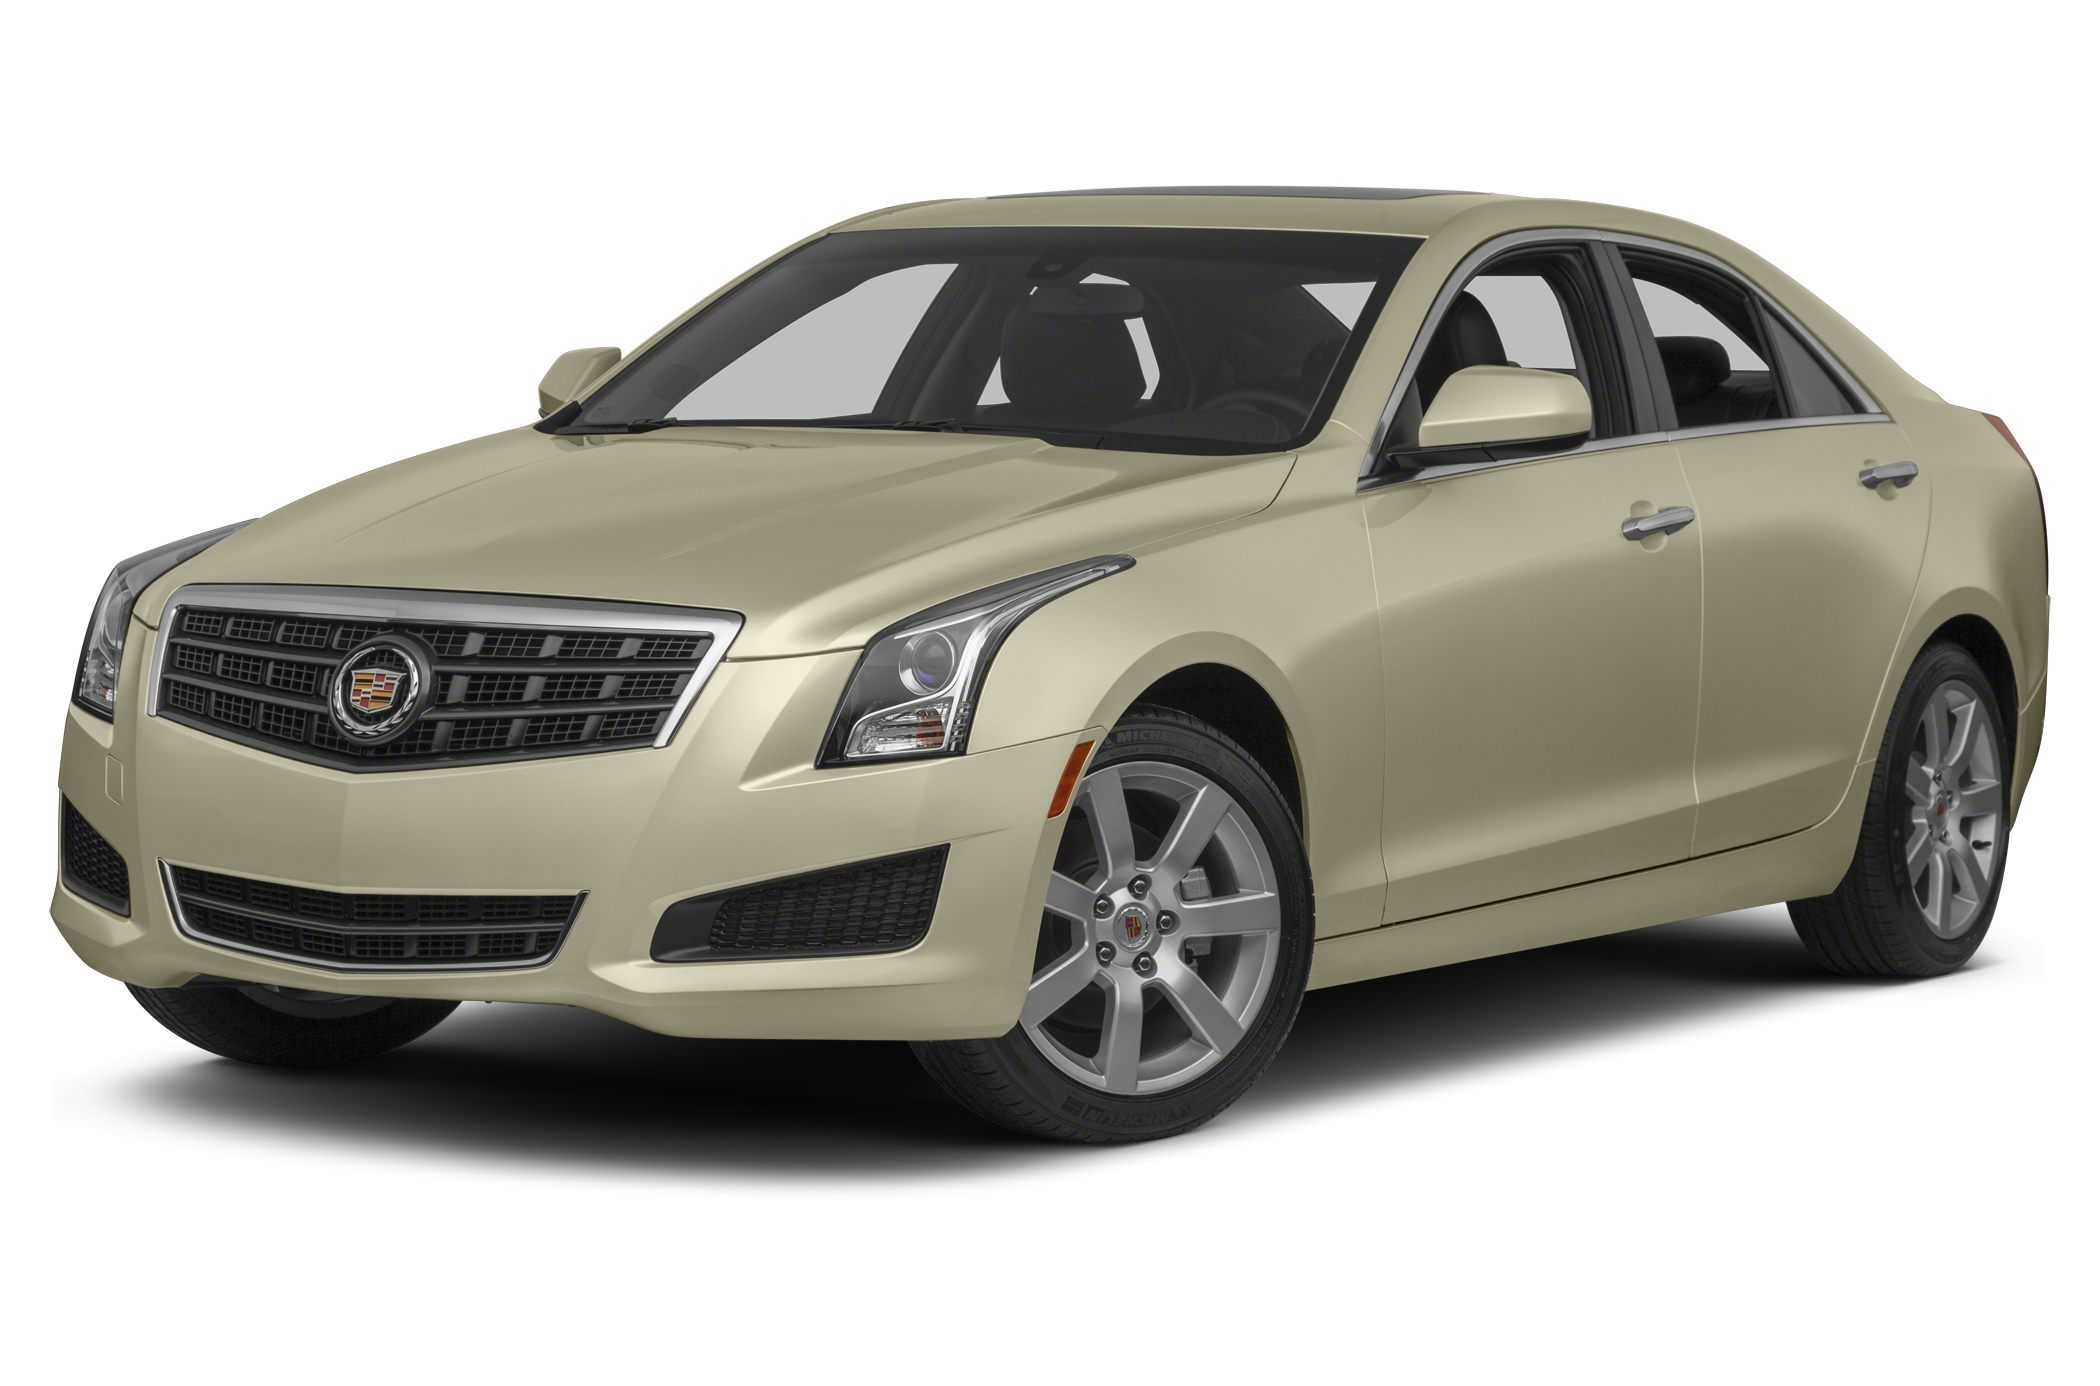 2013 Cadillac ATS 2.5L Sedan for sale in Paducah for $26,987 with 20,095 miles.